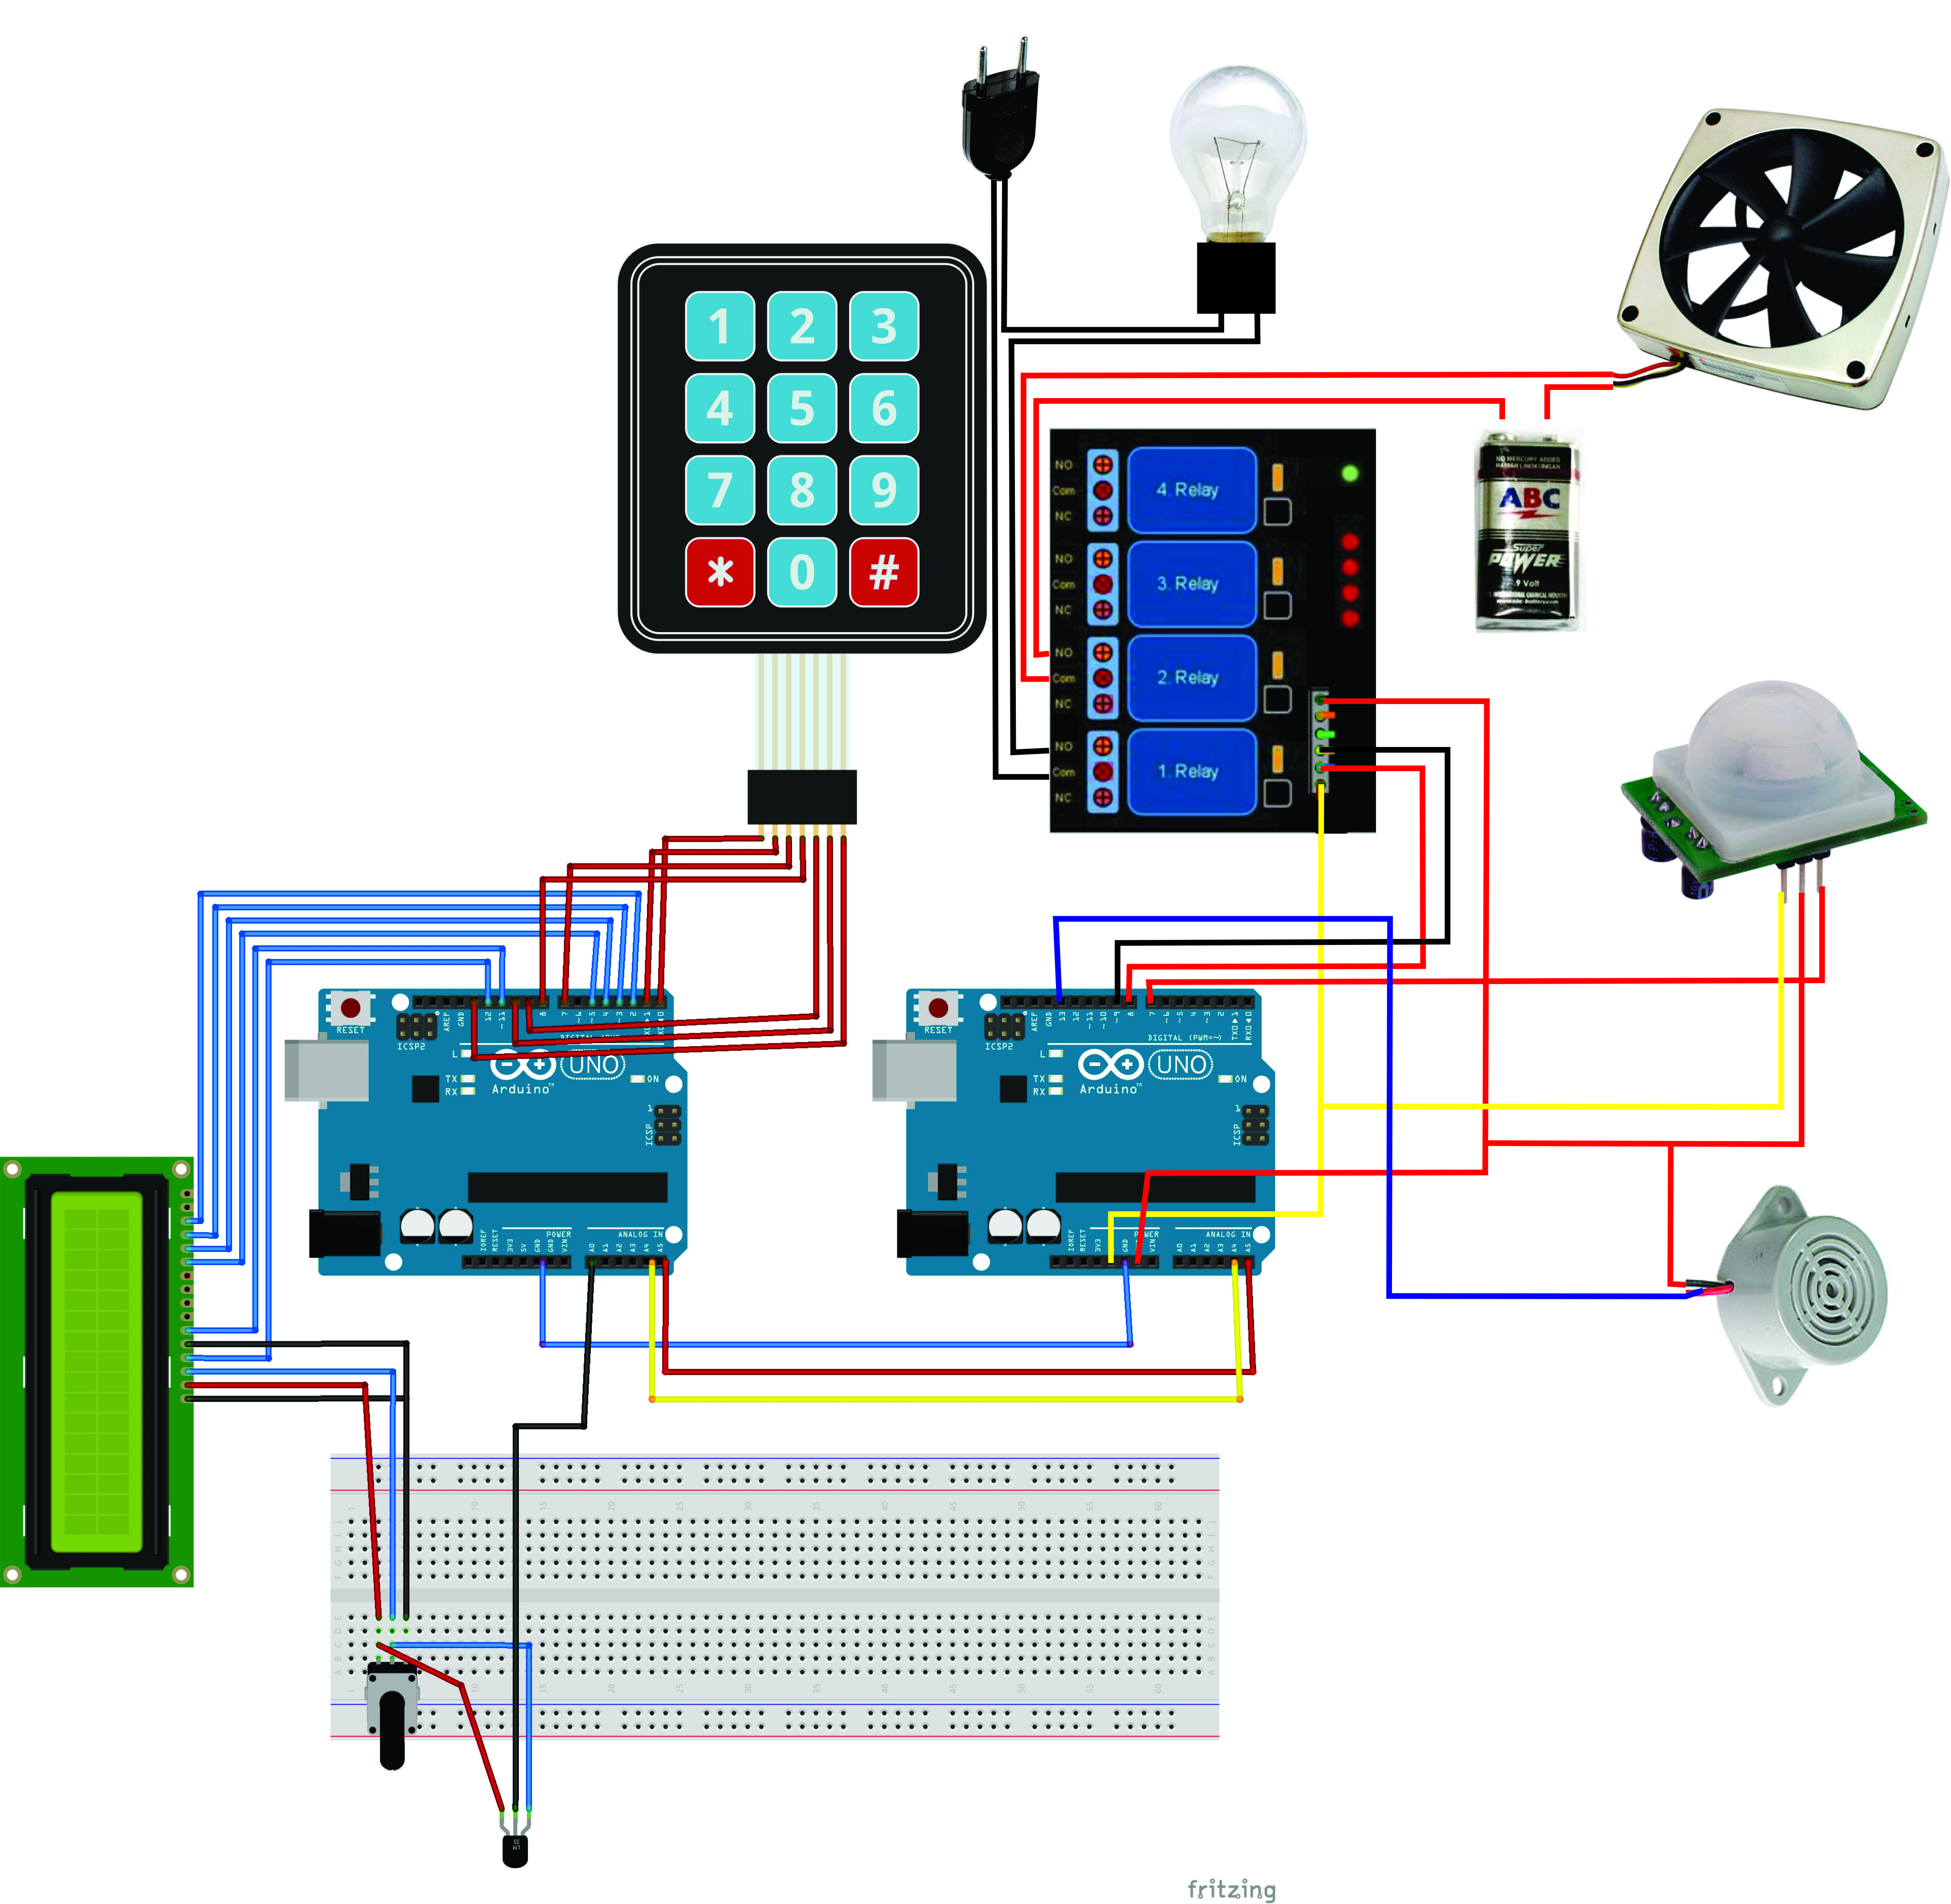 Usb Input Diagram as well Serial To Usb Wiring Diagram together with Cell Phone Schematic likewise What Is Wiring Diagram moreover Usb Input Diagram. on gsmgprs gps modem with sim900sim908 module